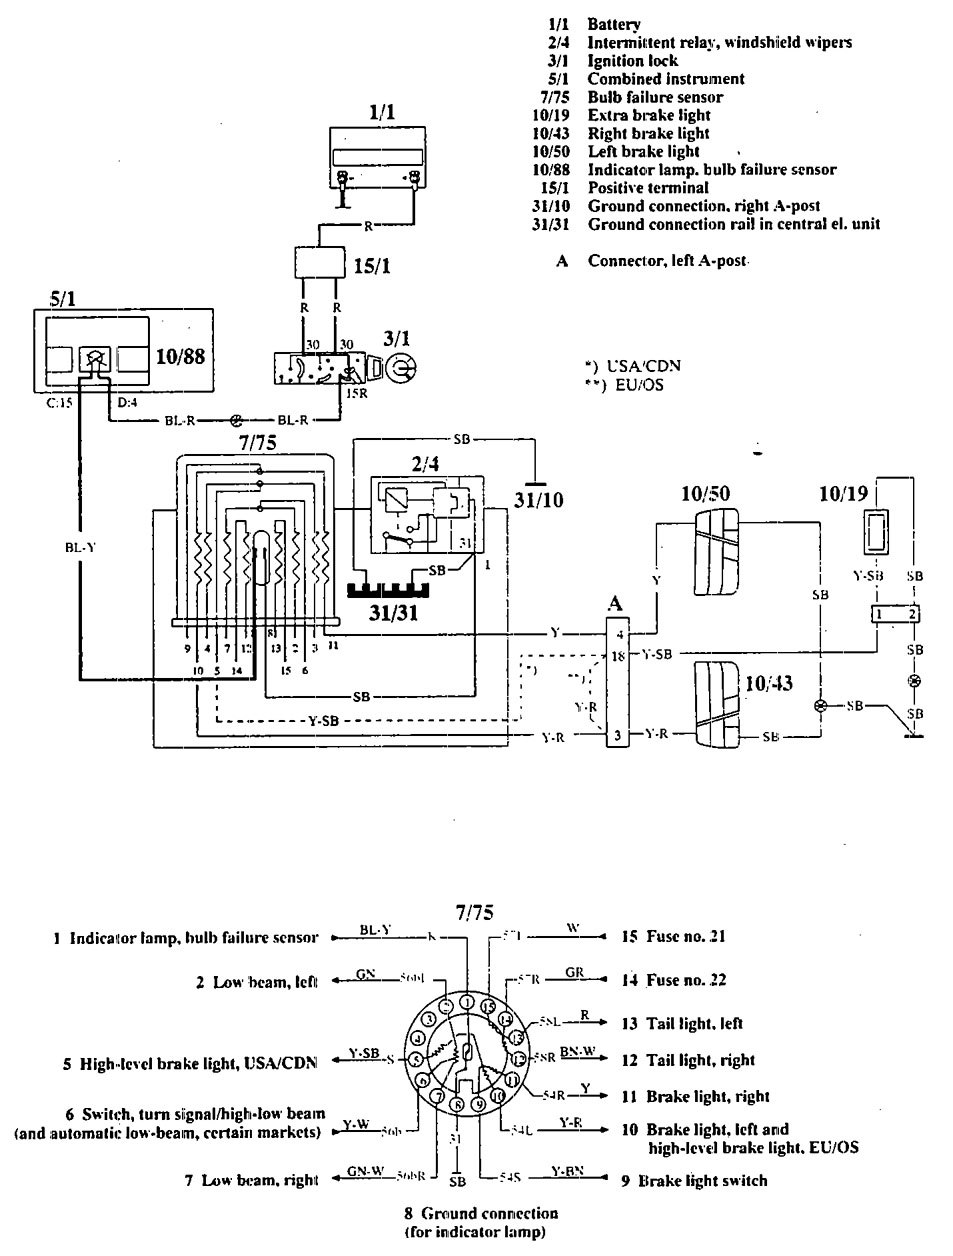 Volvo 740 1992 wiring diagrams audible warning system volvo 740 wiring diagram audible warning system swarovskicordoba Gallery